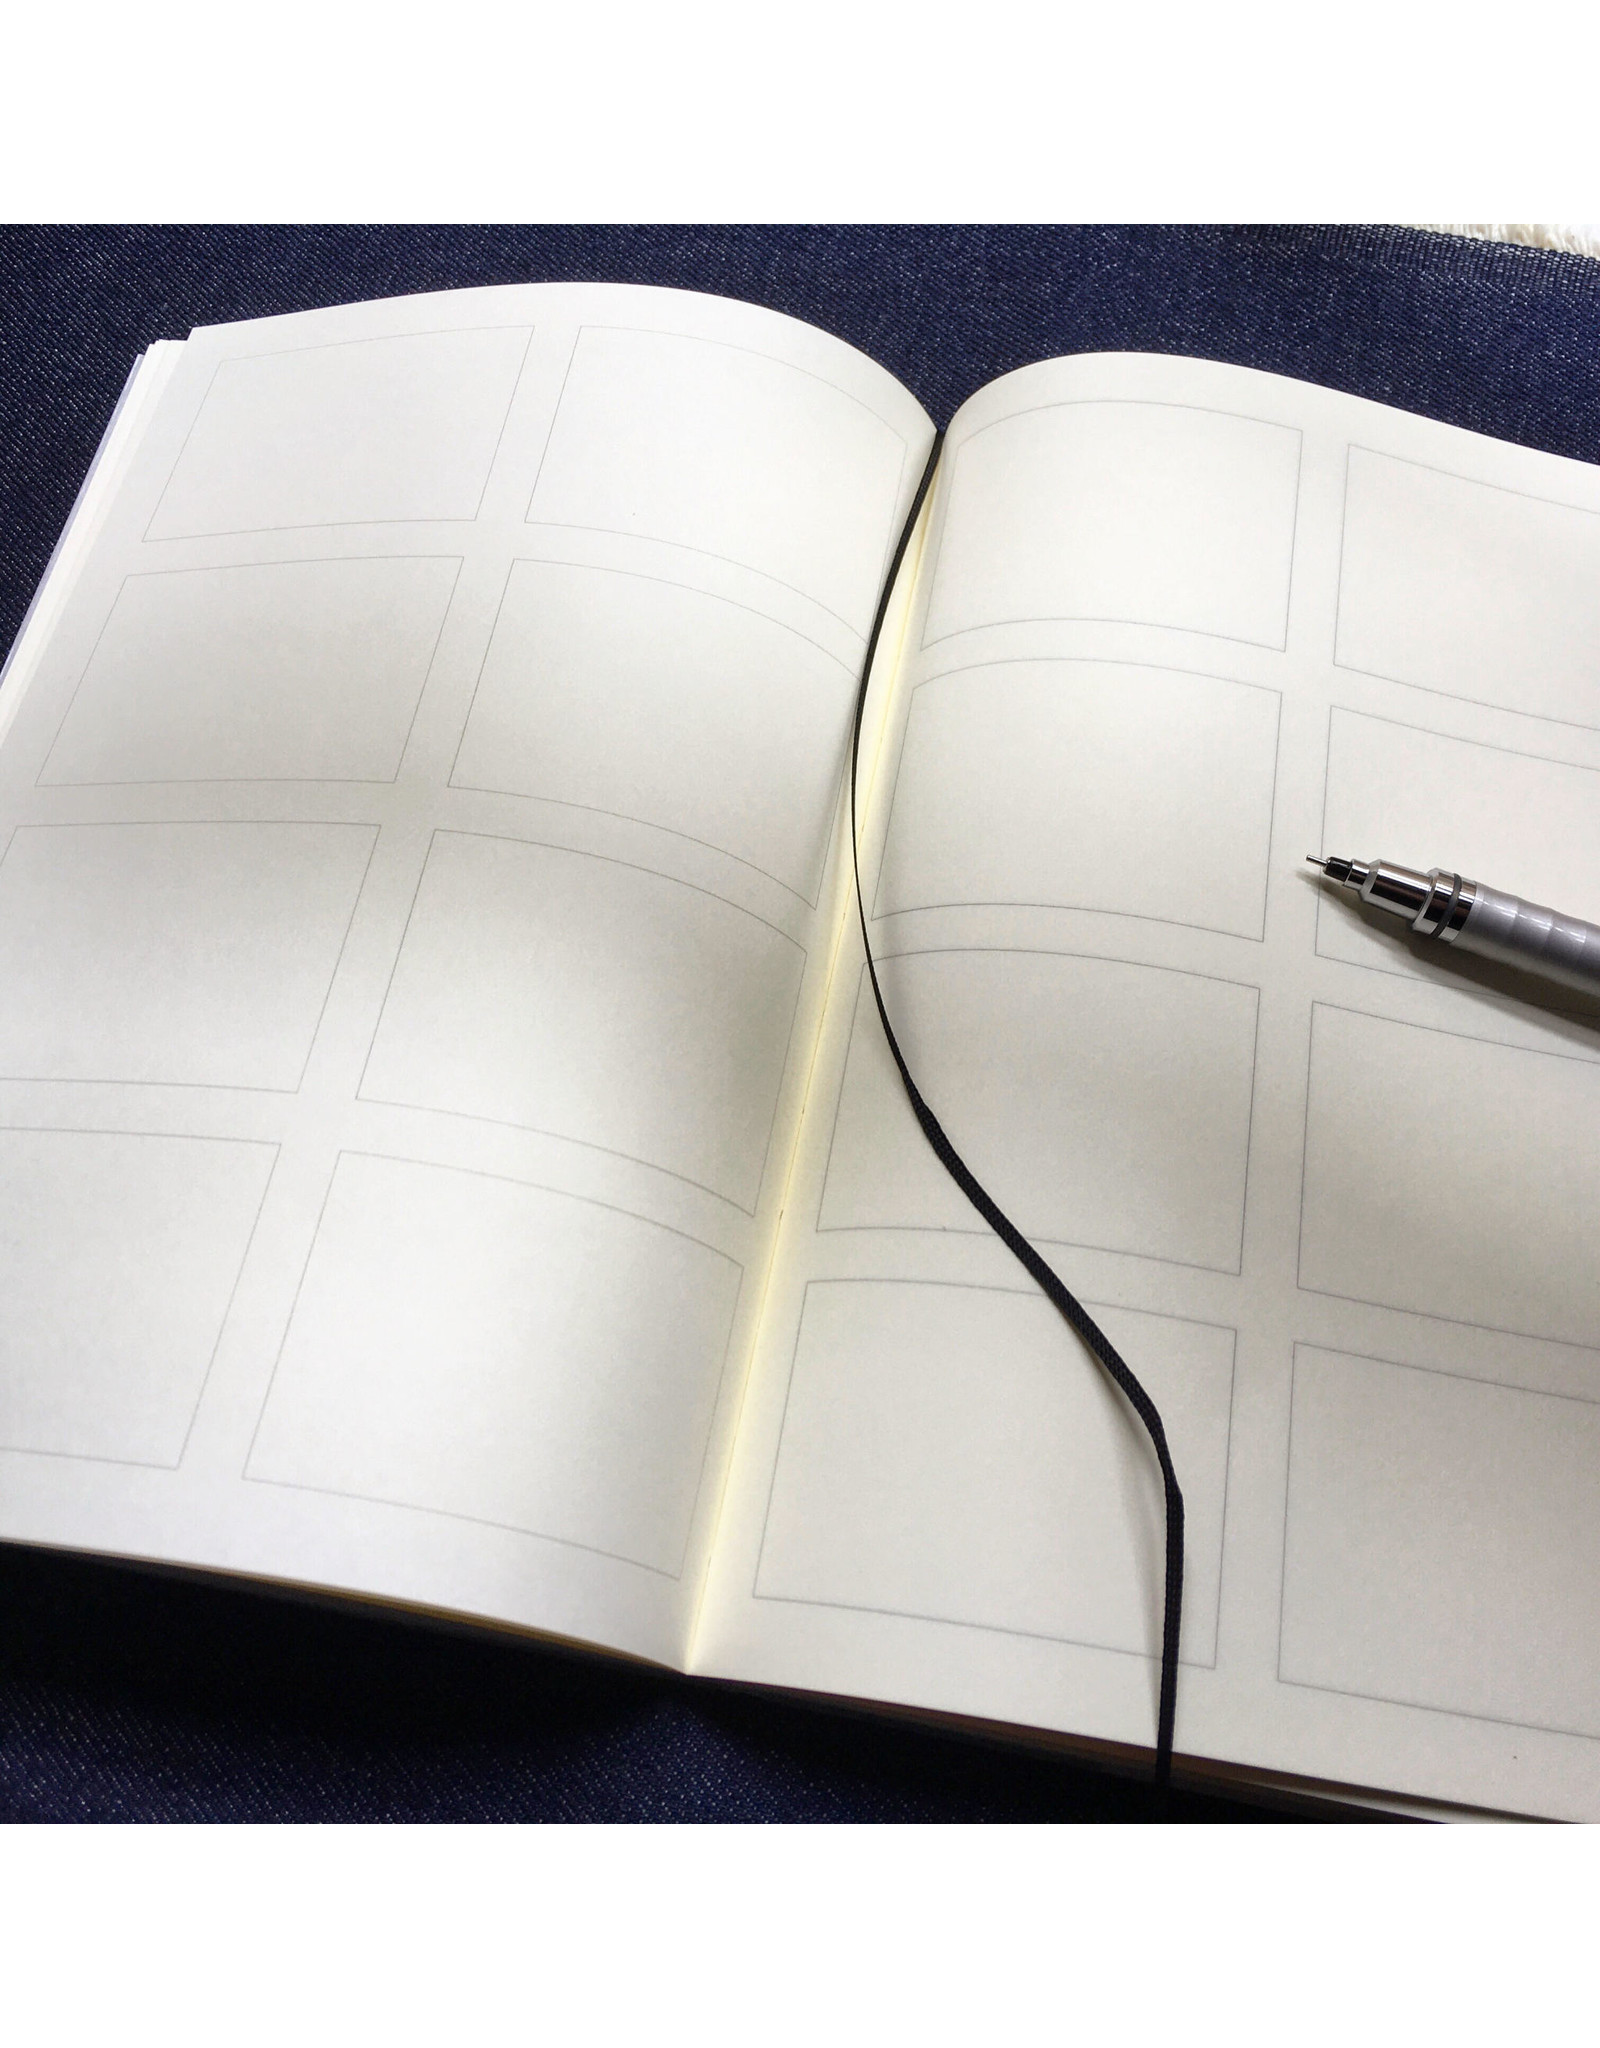 Traveler's Company 10TH ANNIVERSARY MD NOTEBOOK A5  STORYBOARD